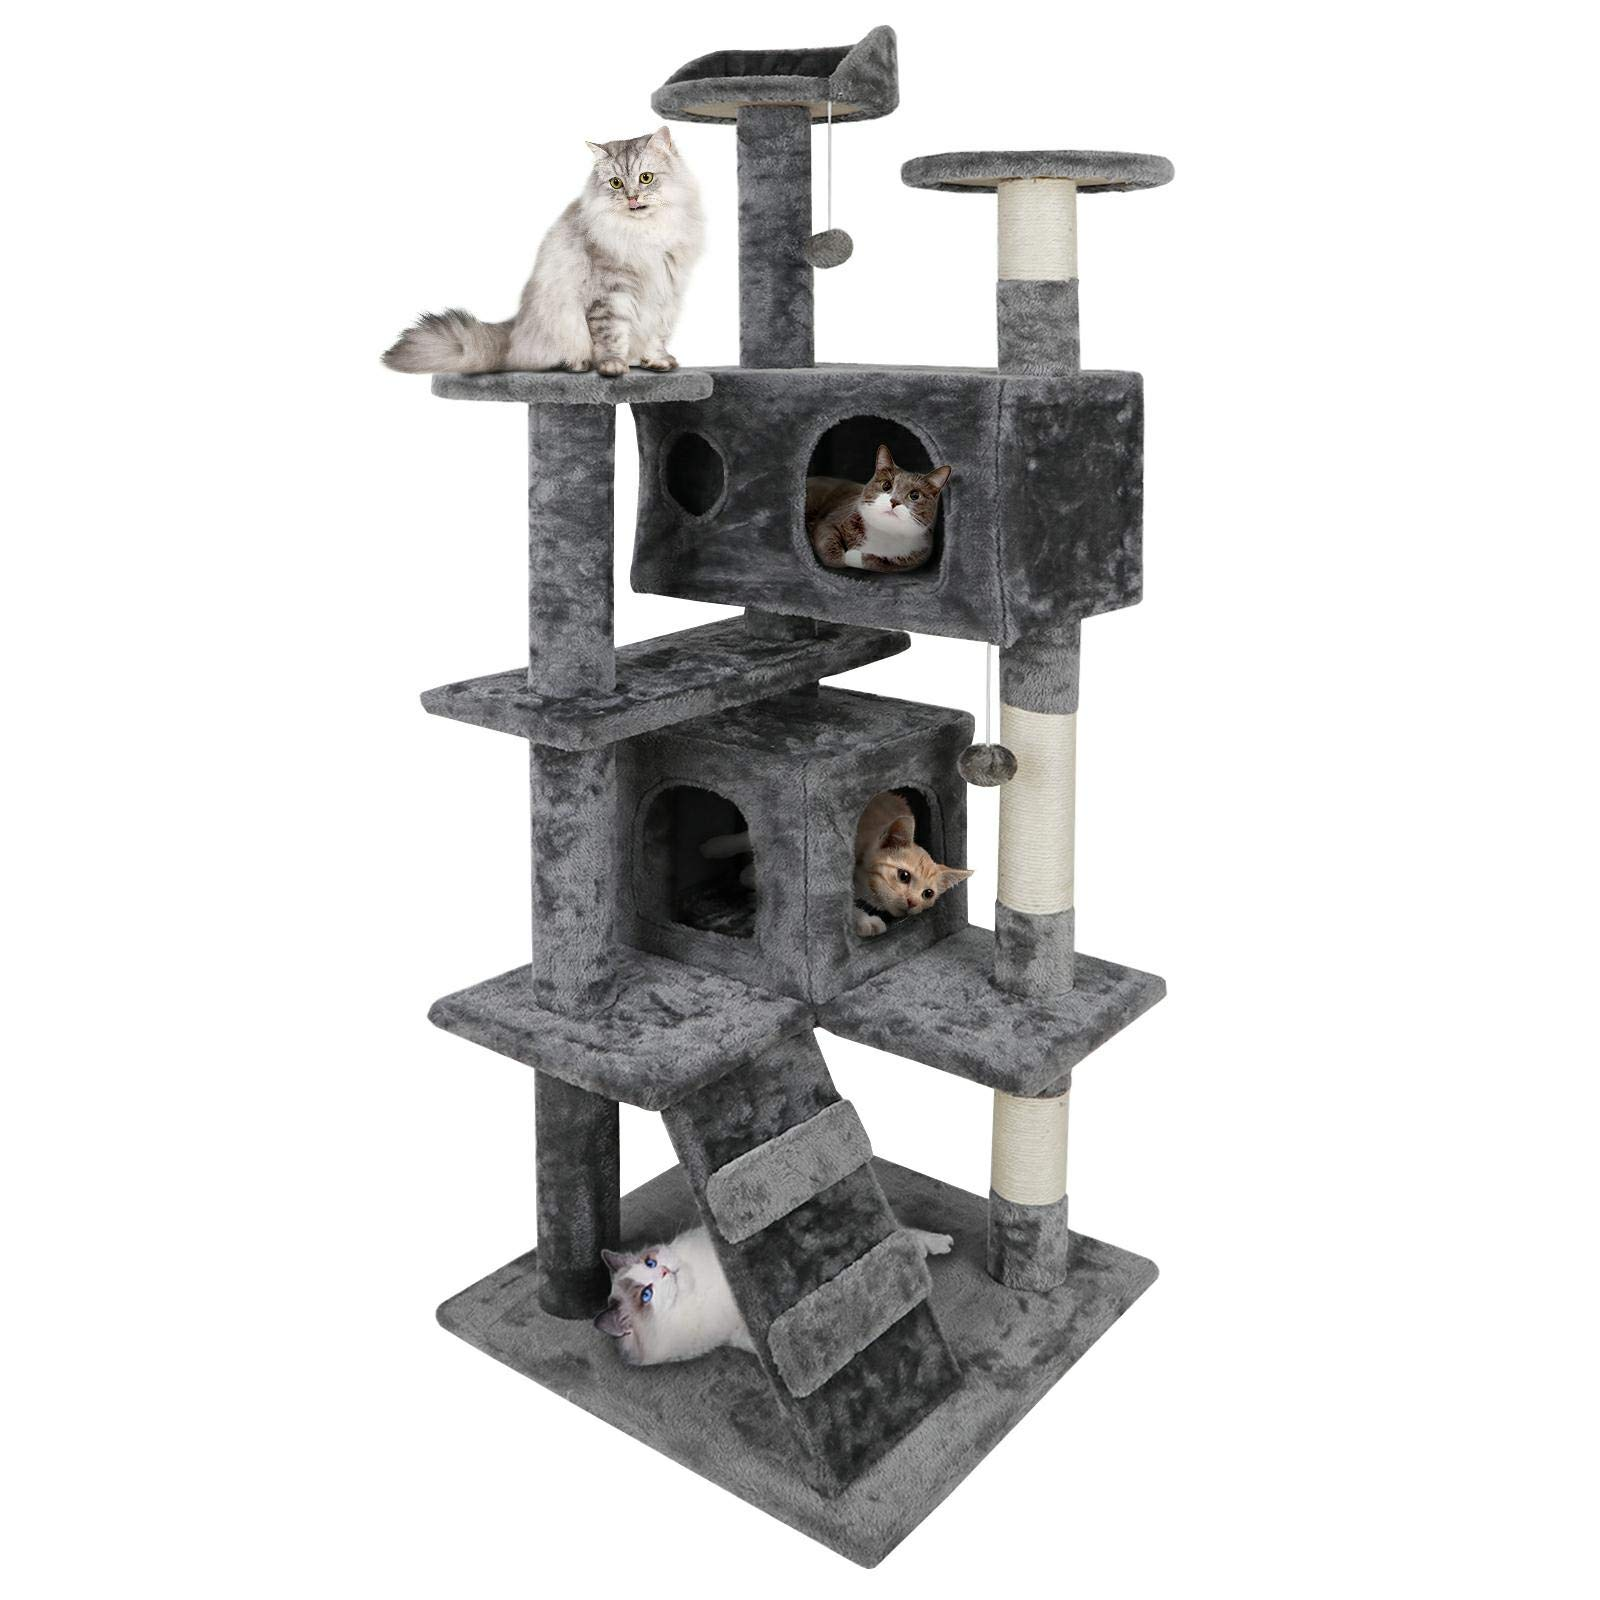 ZENY 53'' Cat Tree with Sisal-Covered Scratching Posts and 2 Plush Rooms Cat Furniture for Kittens by ZENY